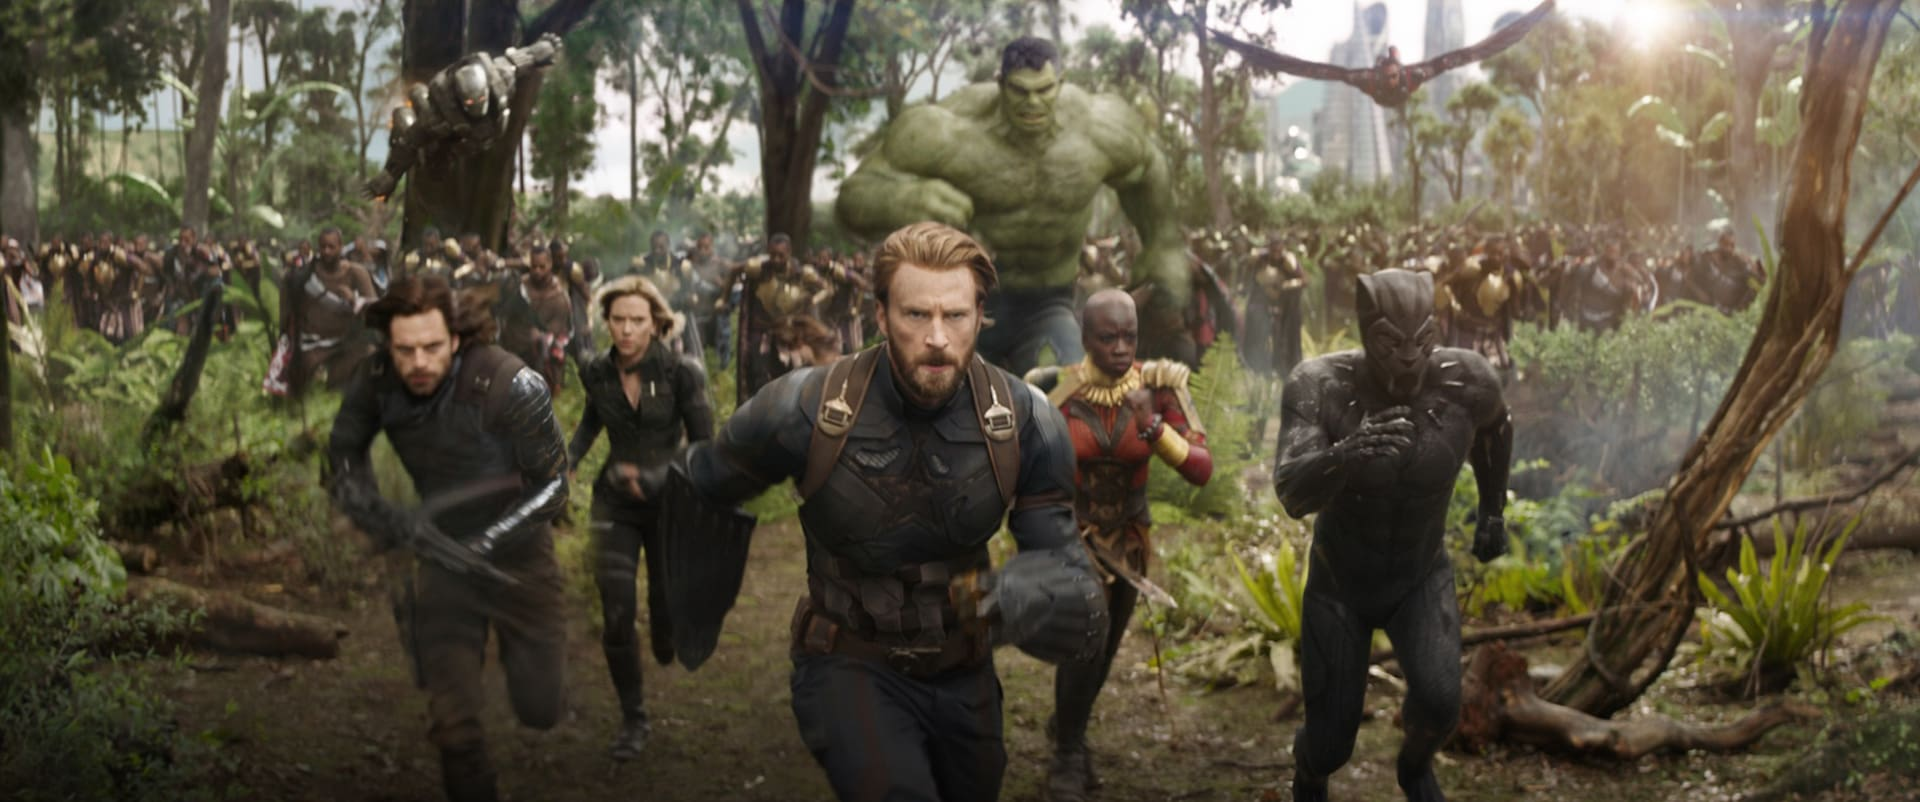 Avengers: Infinity War | I biograferne 25. april